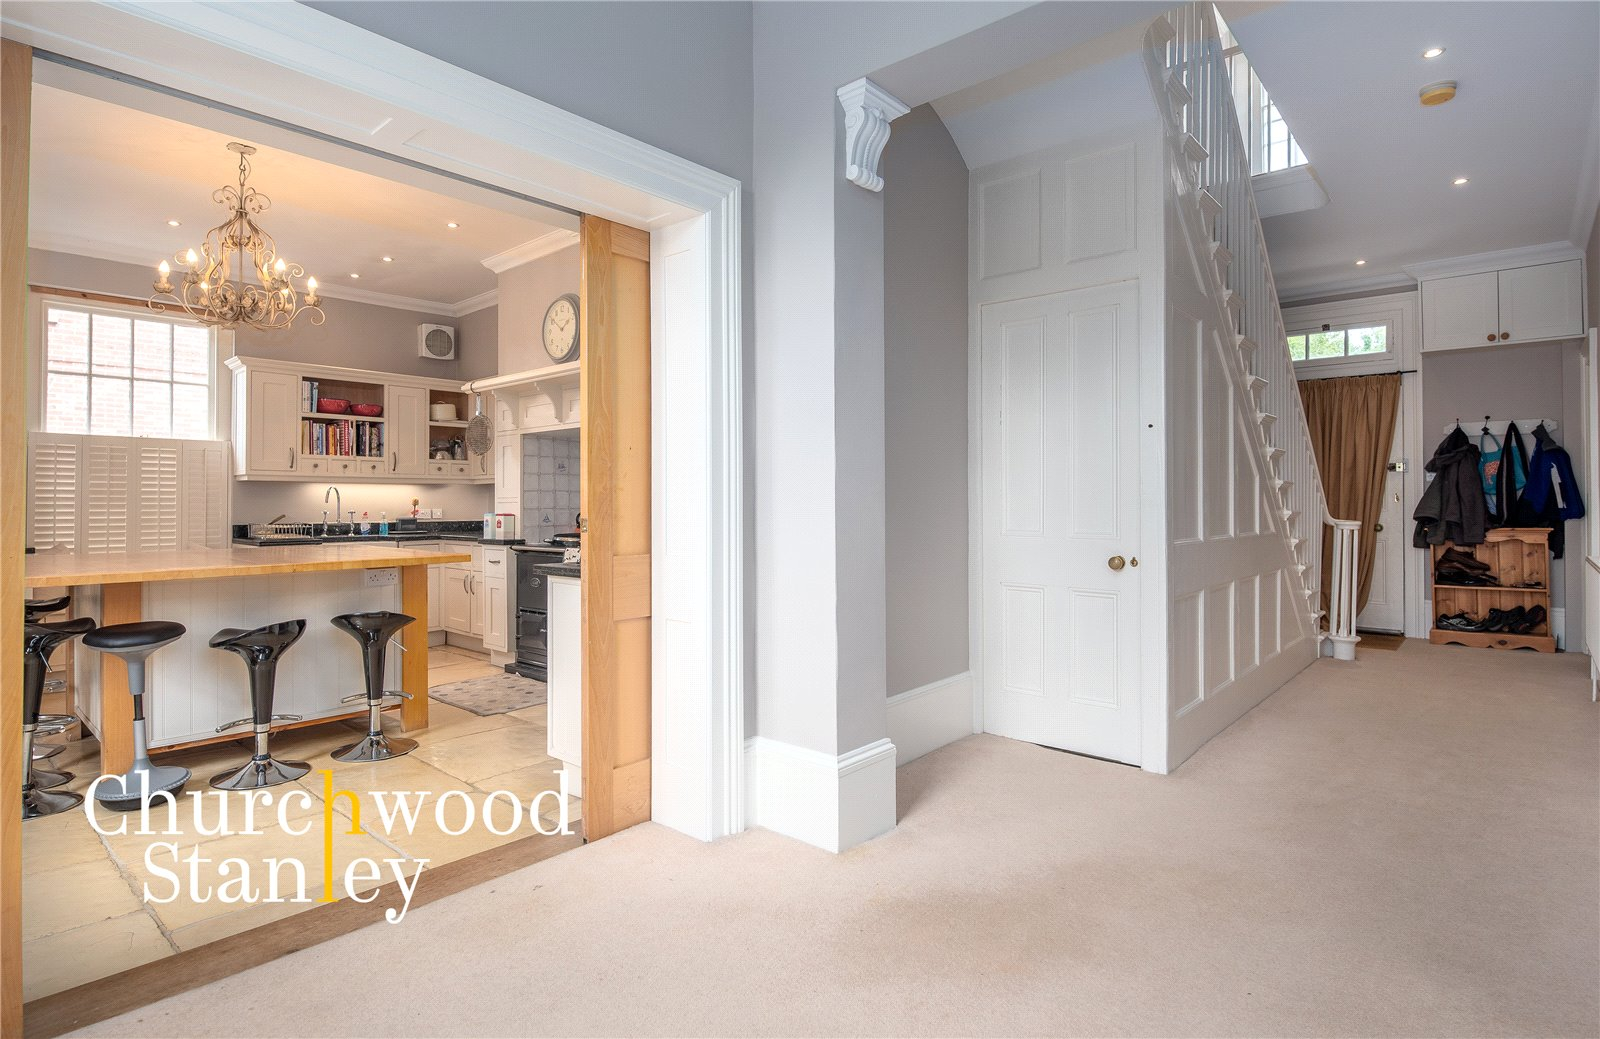 5 bed house for sale in Station Road, Ardleigh, Colchester  - Property Image 4